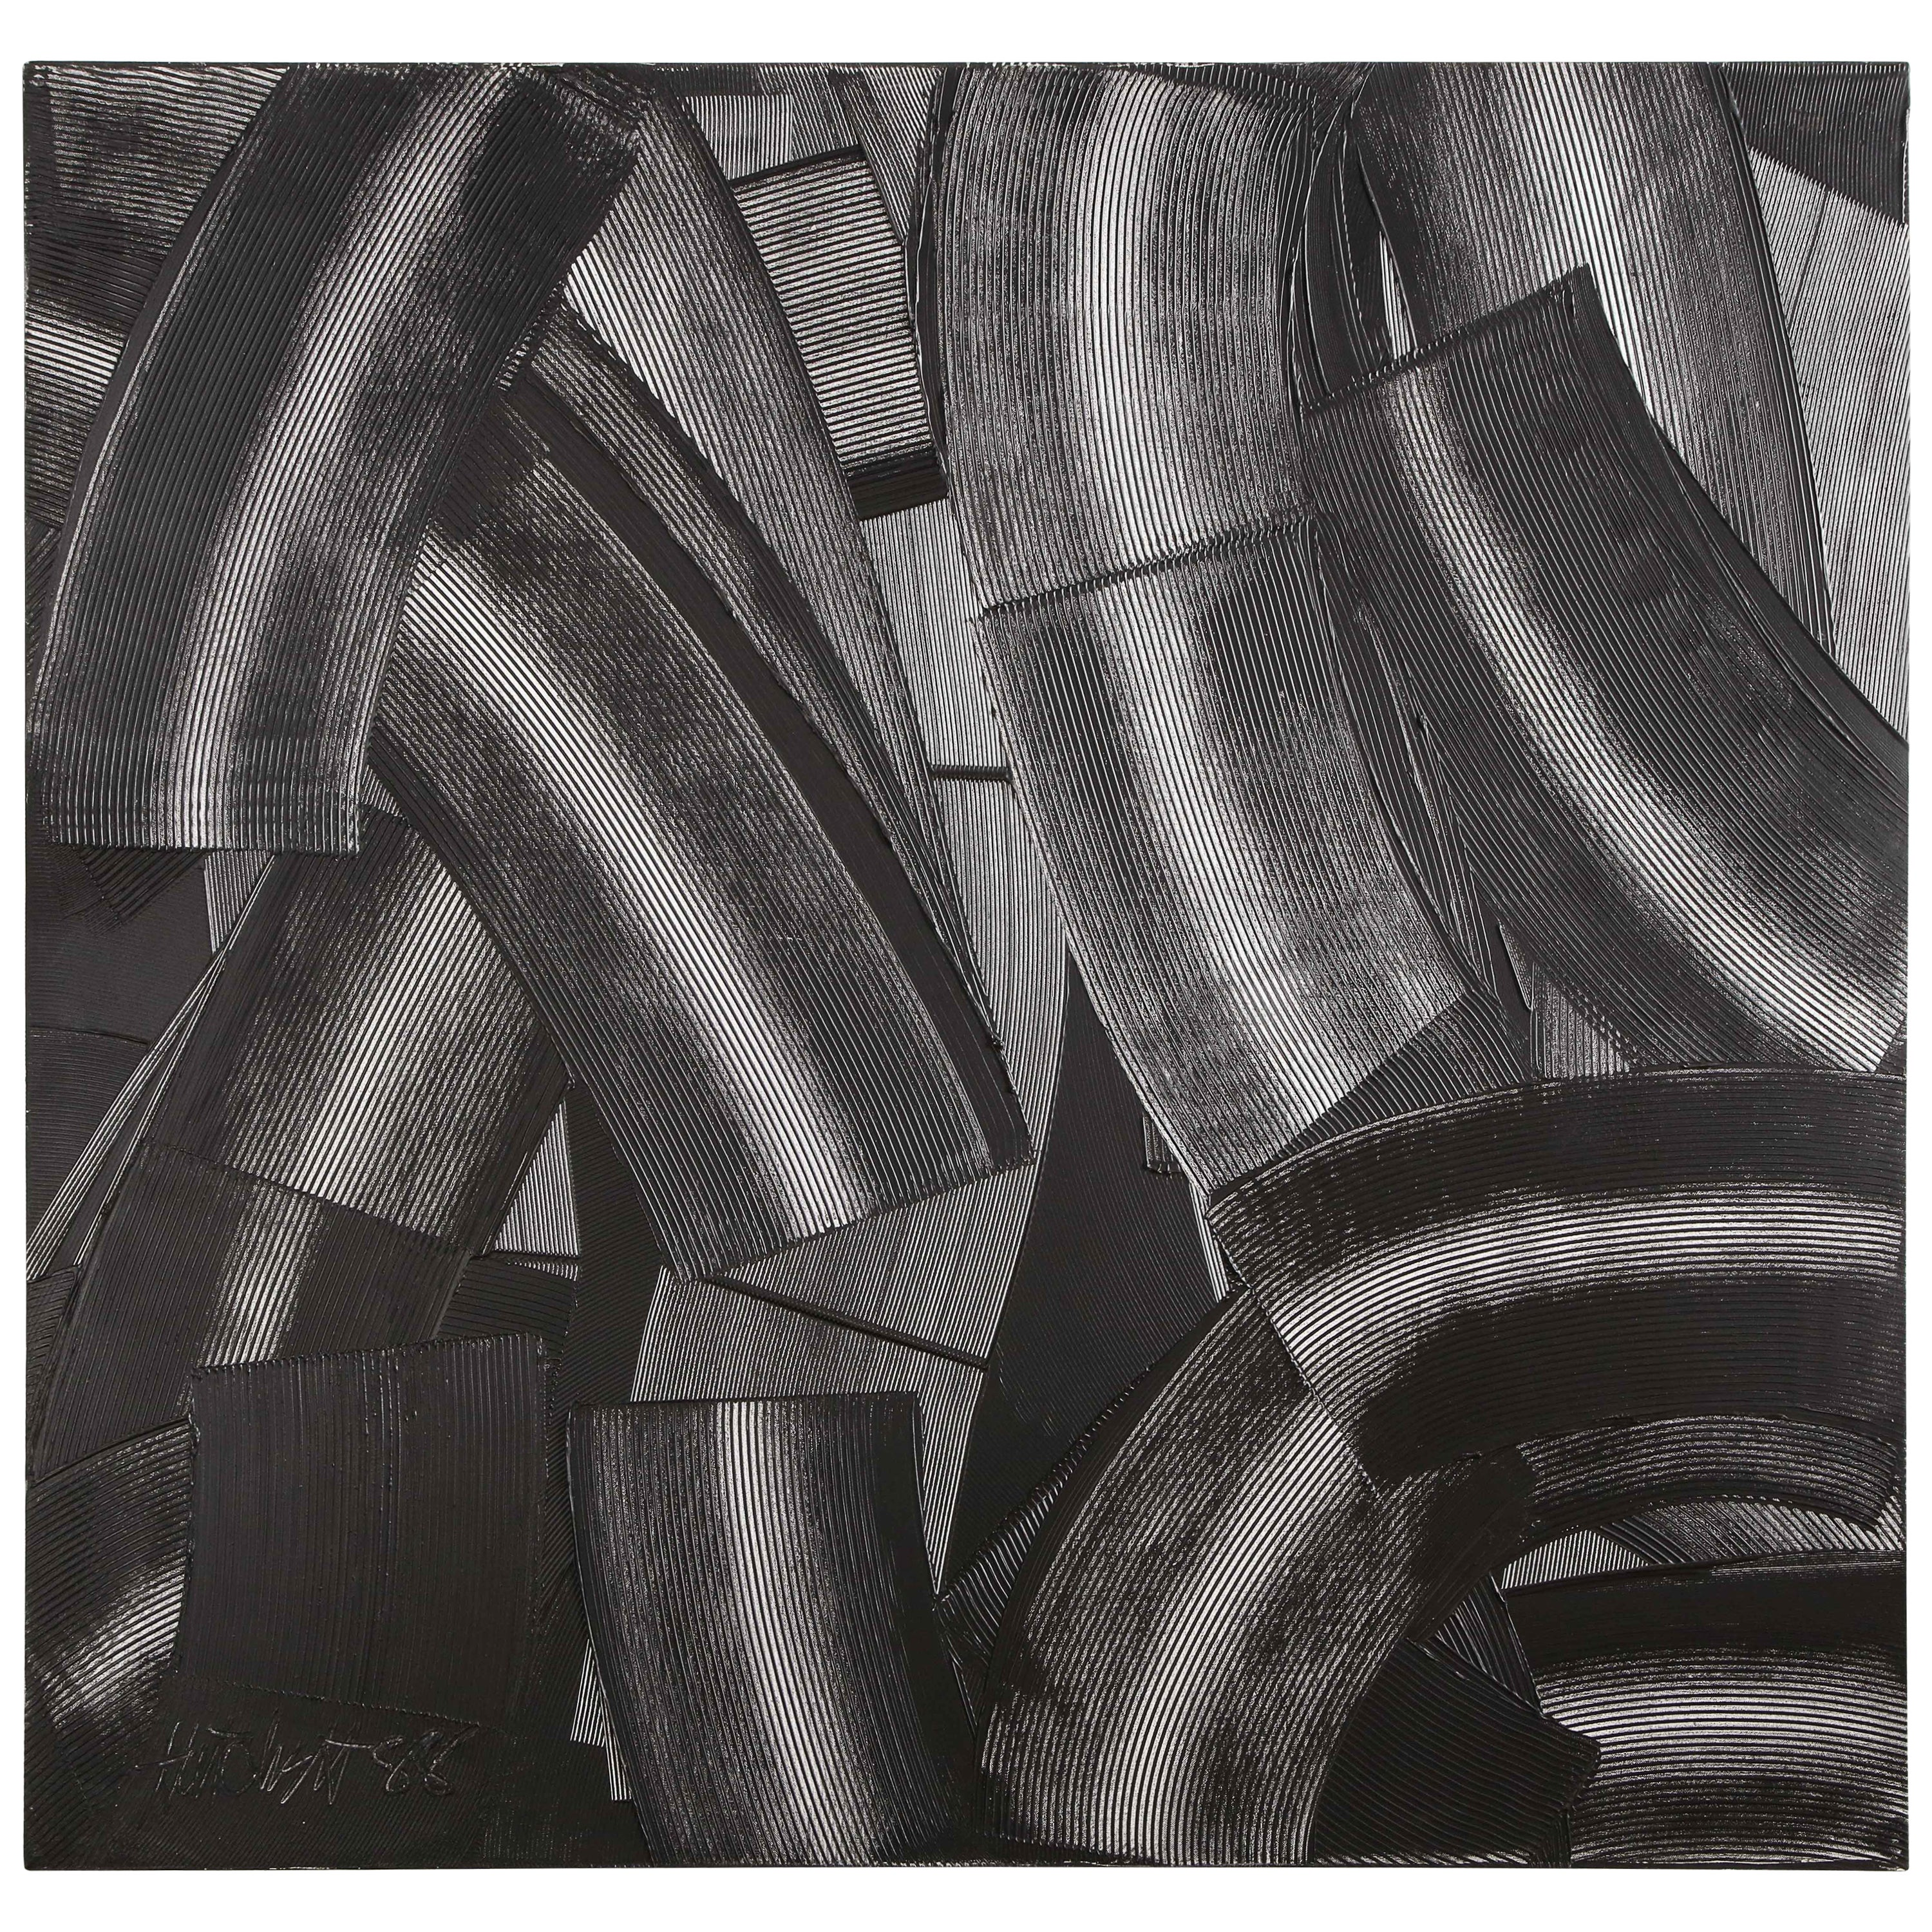 "Abstract Black & White ""Trowel"" Painting by Duayne Hatchett, USA 1990s"